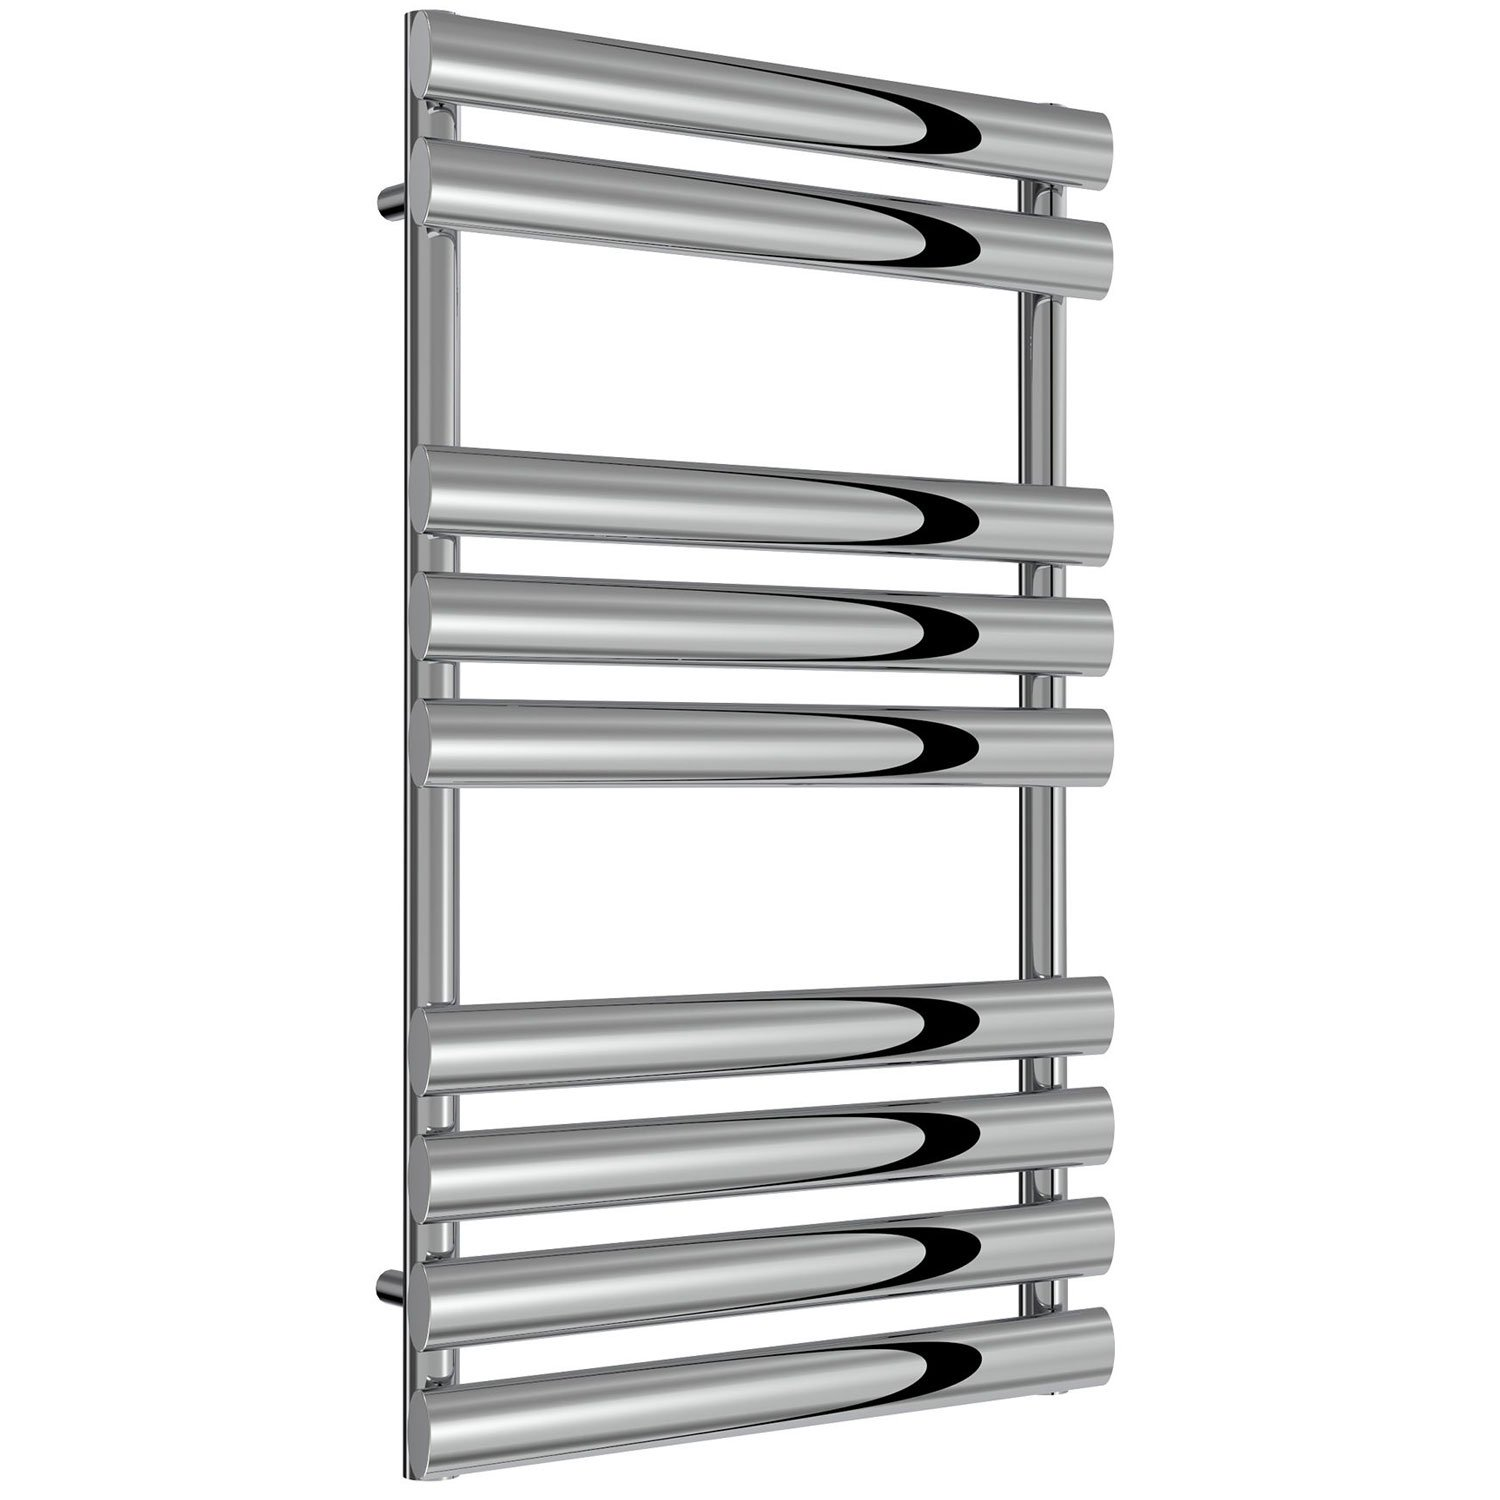 Reina Arbori Designer Heated Towel Rail 1130mm H x 500mm W Chrome